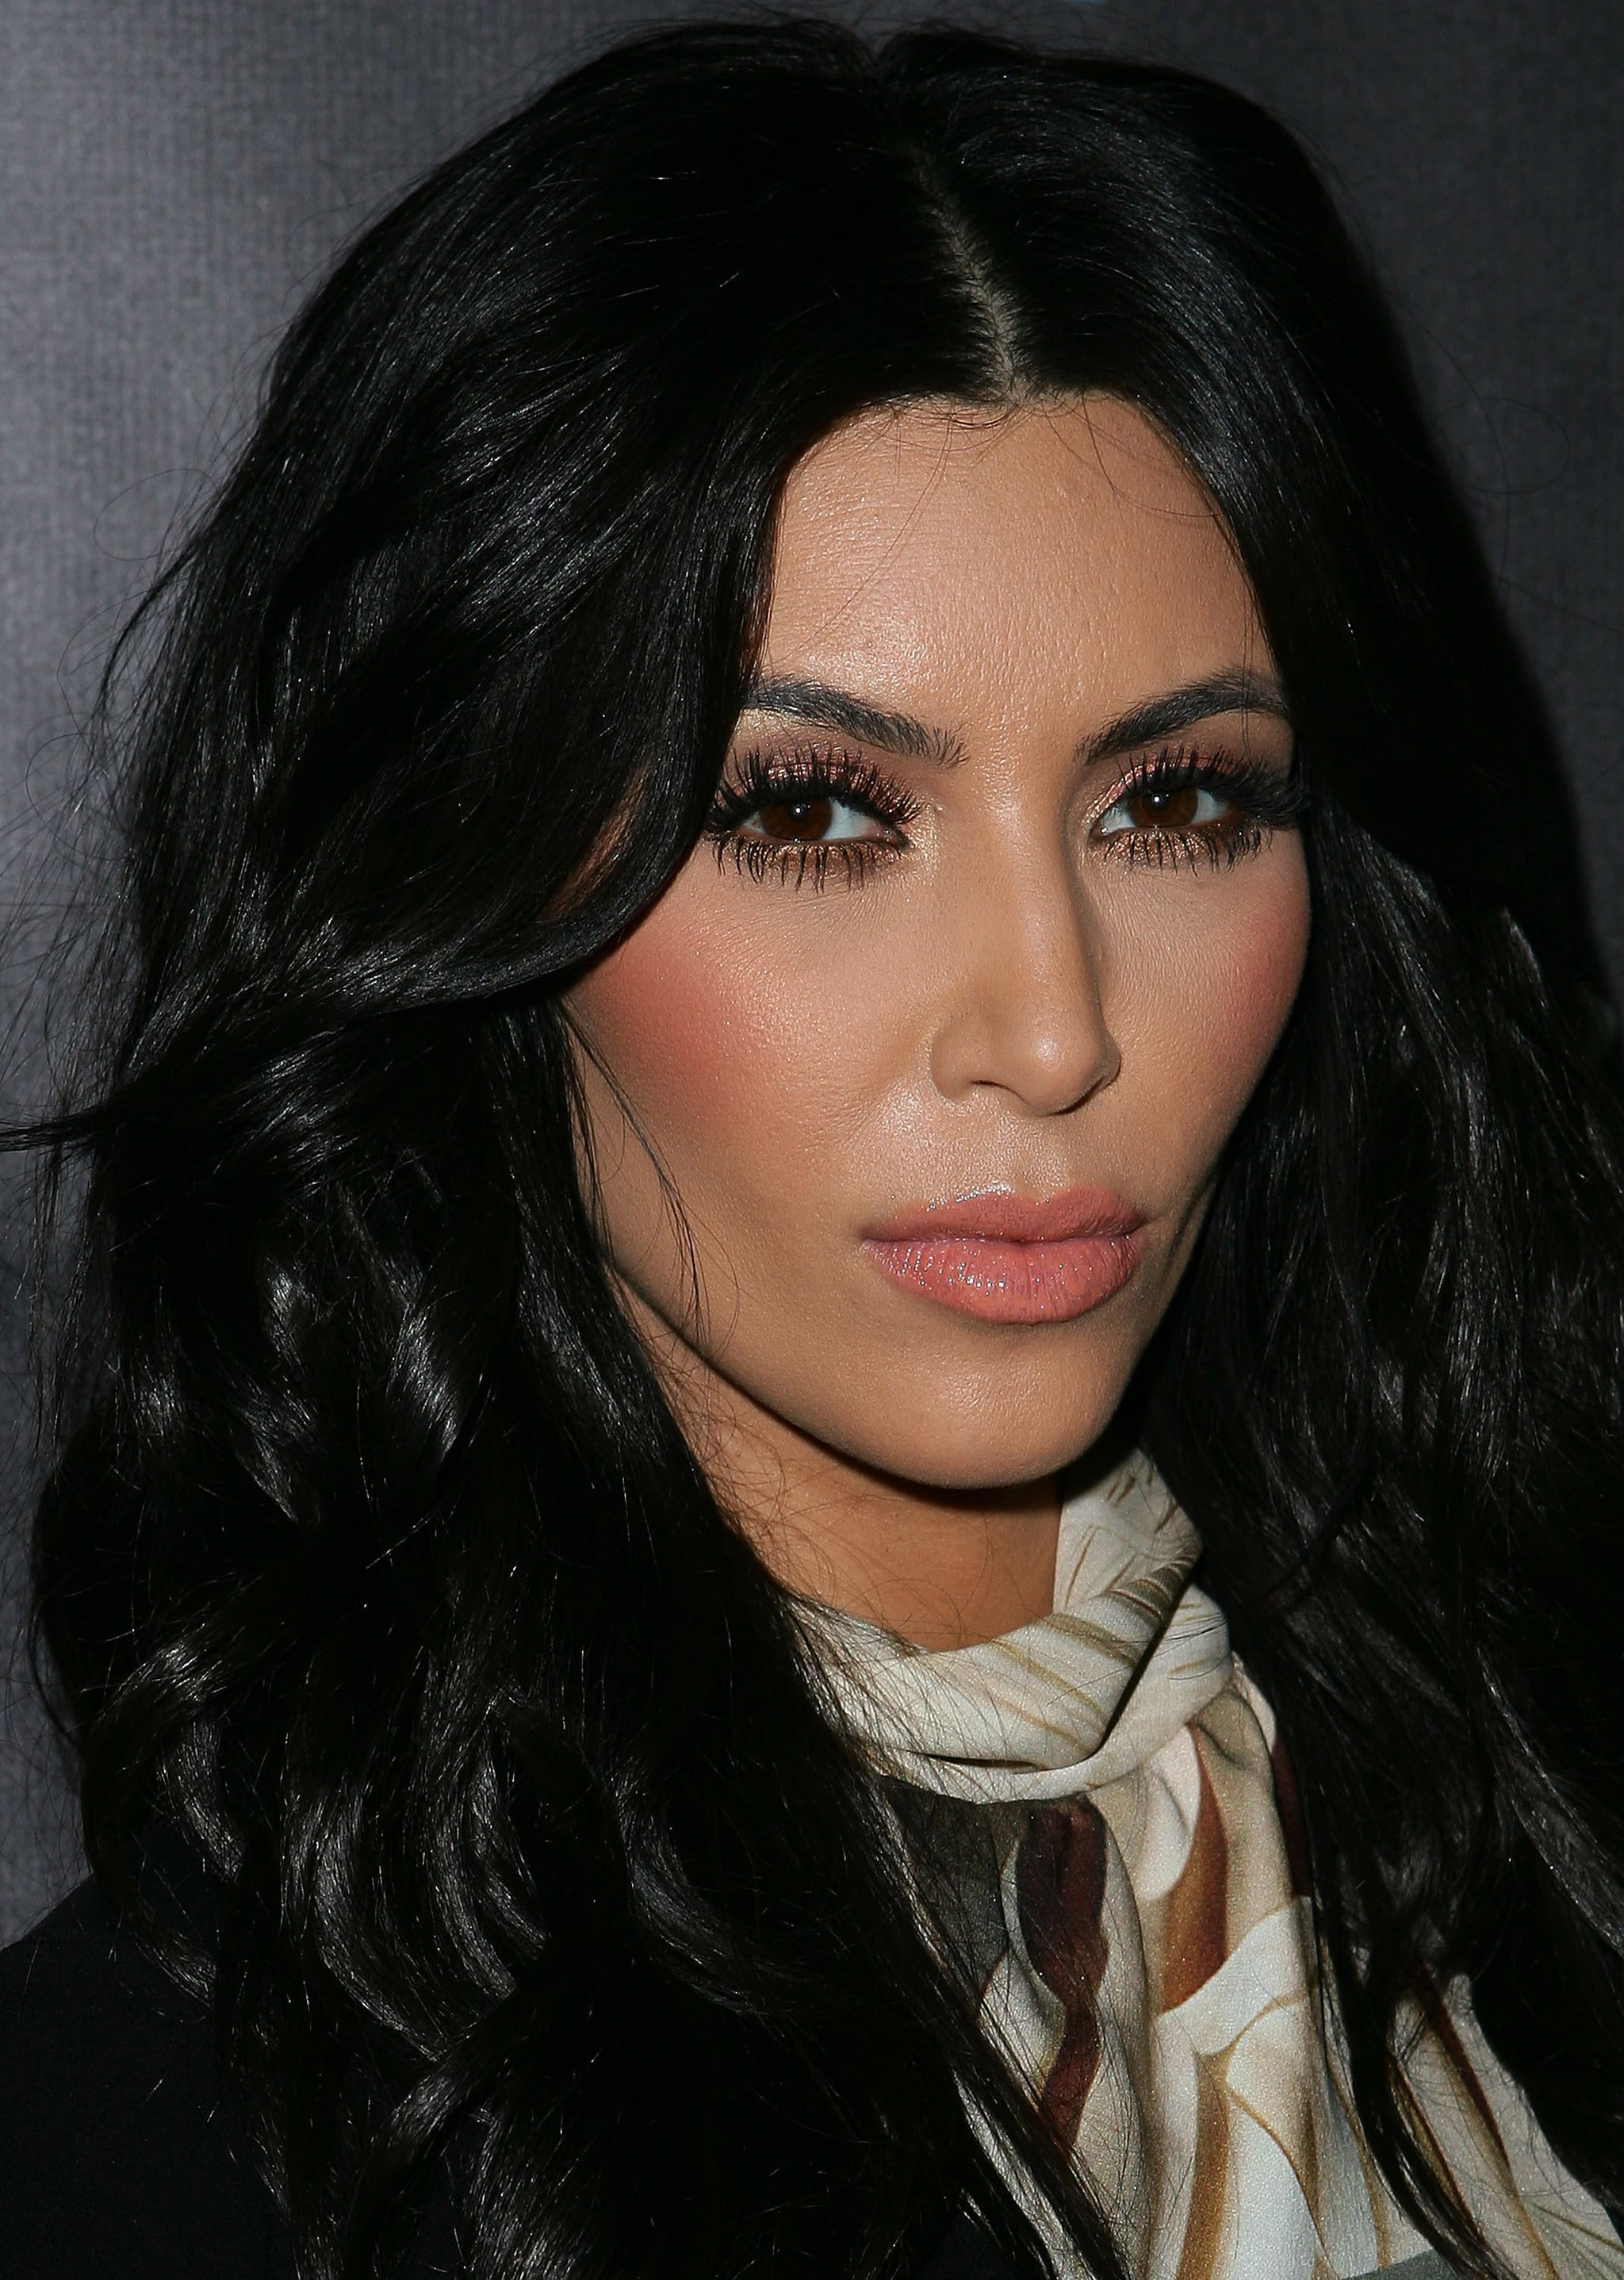 Kim Kardashian held a serious expression at the launch of the Kardashian Kollection on Sydney.